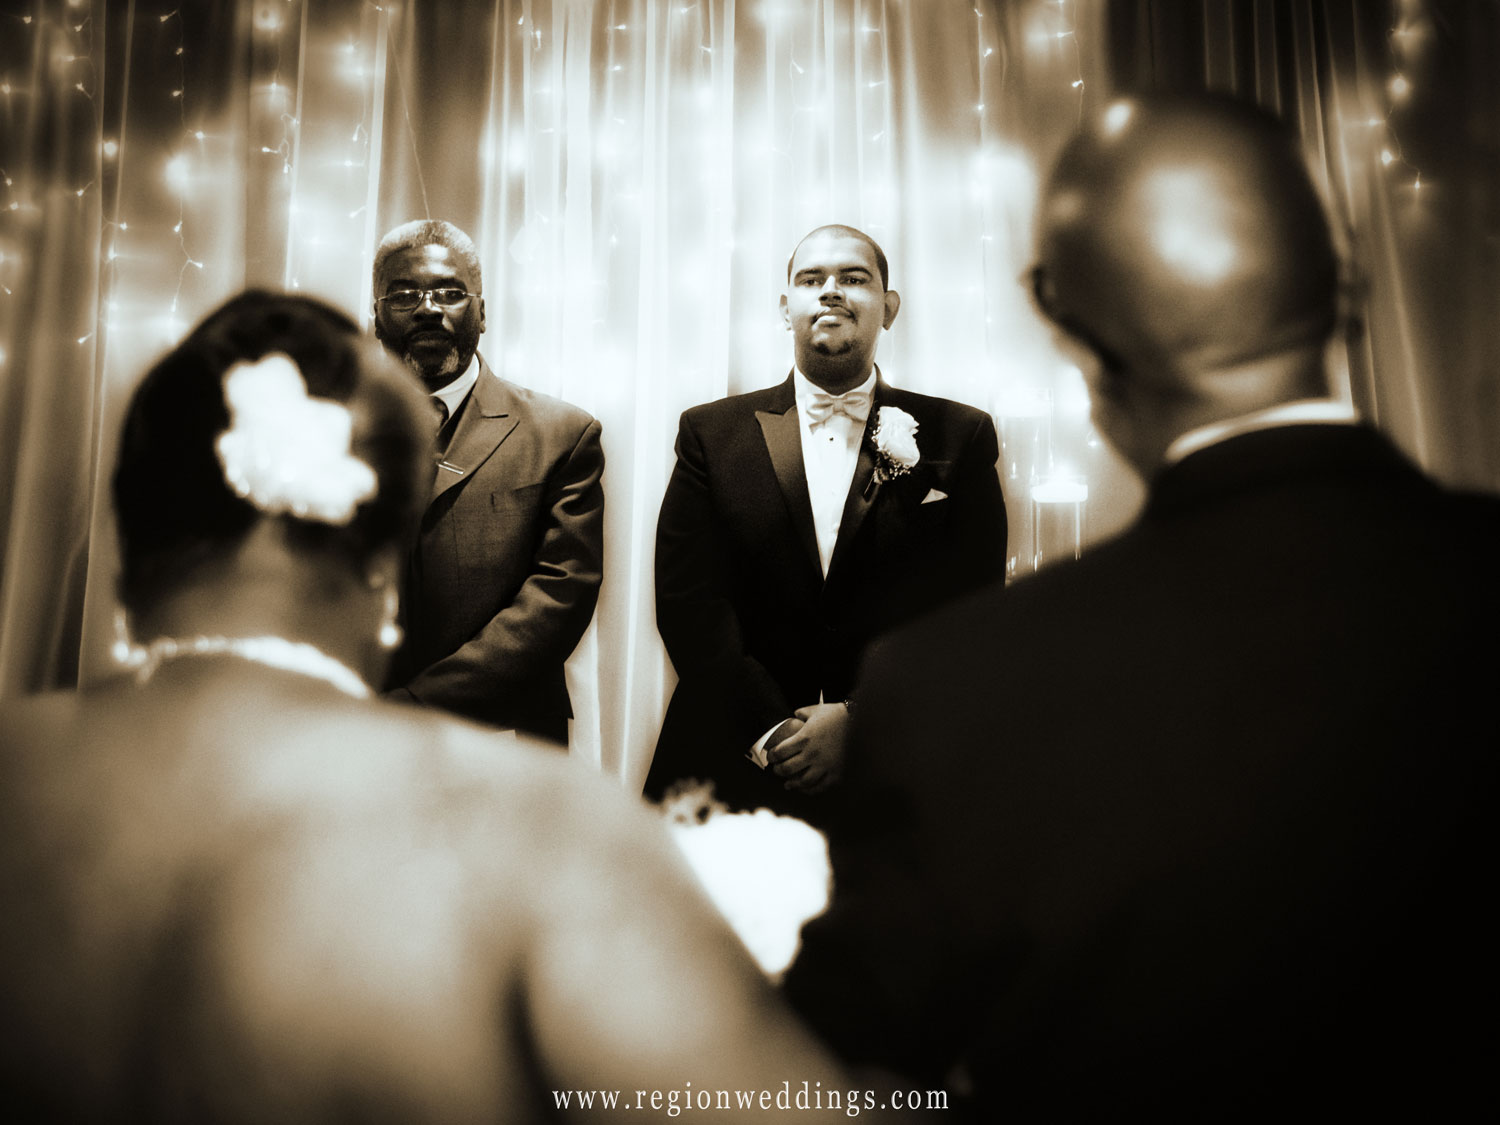 The groom watches his bride come down the aisle in her Father's arms.